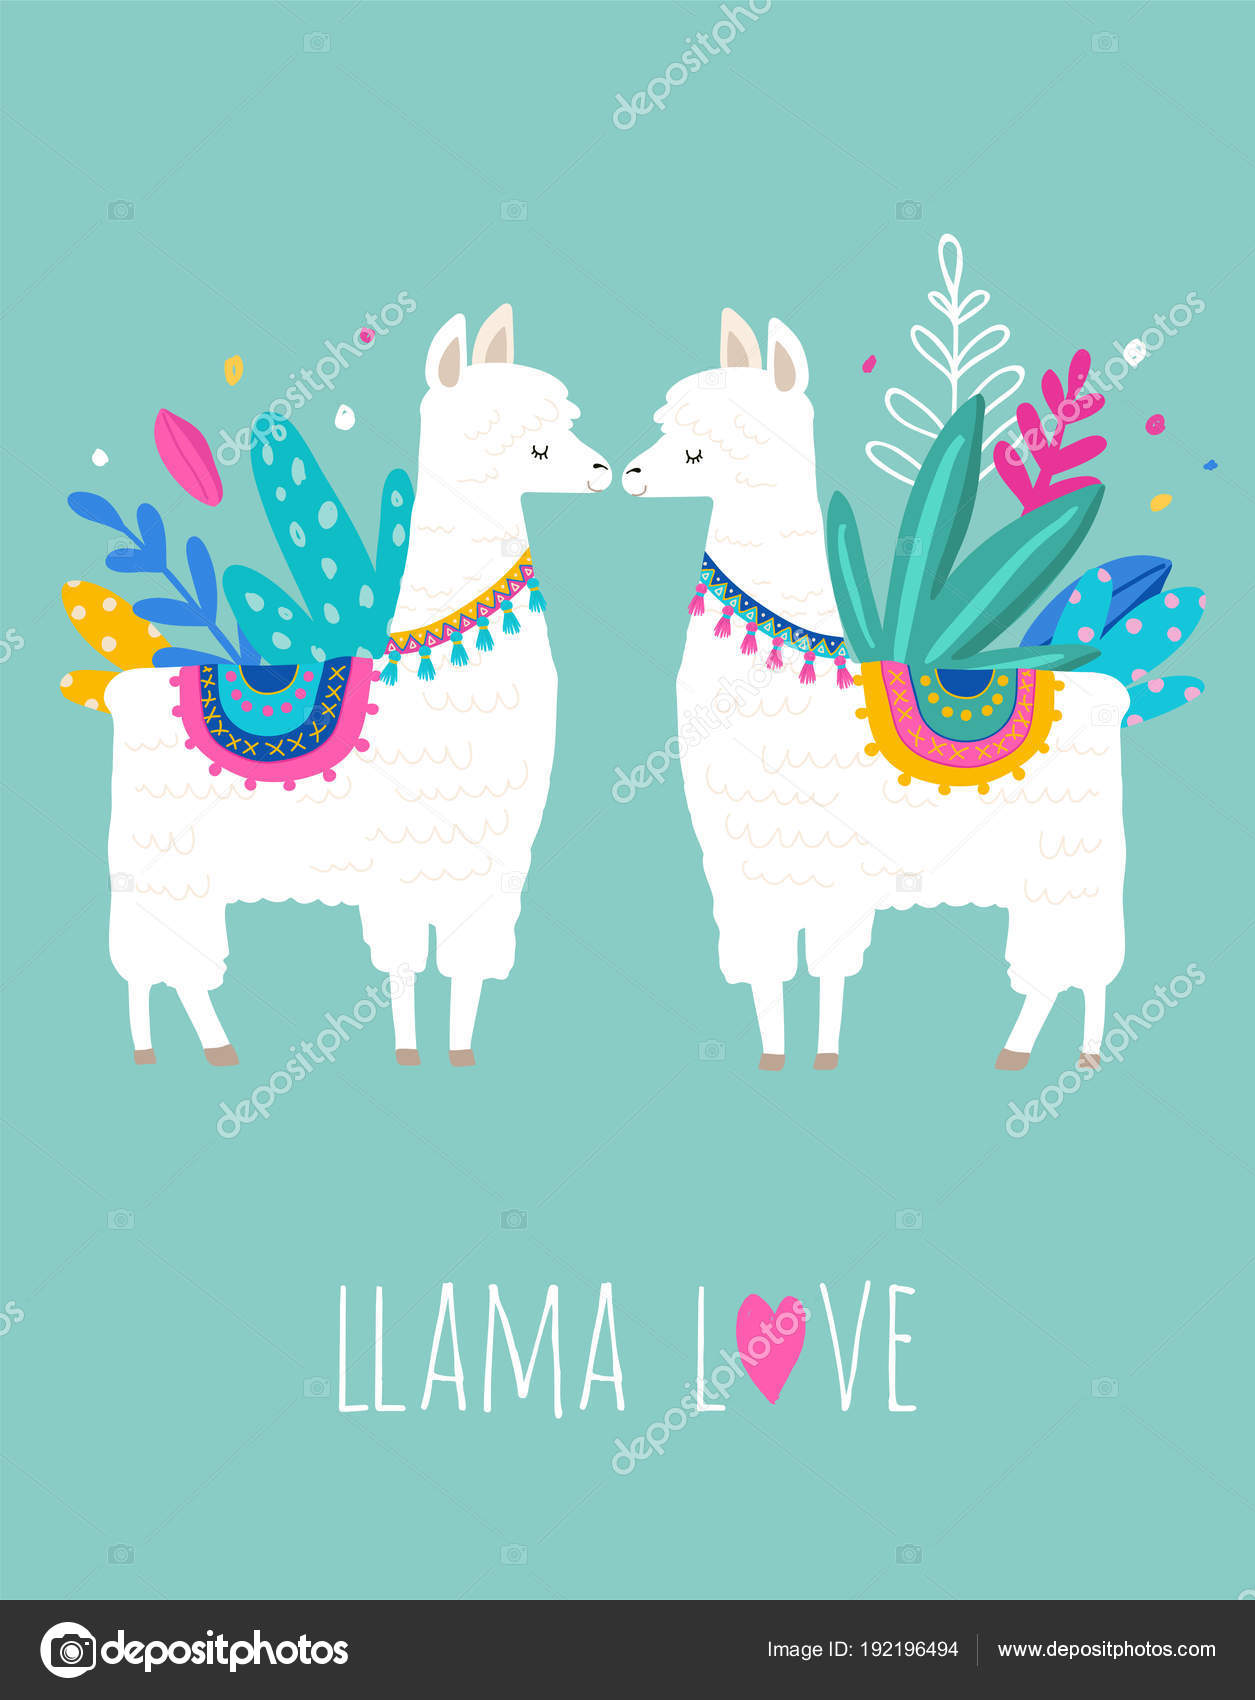 llama love illustration cute hand drawn elements and design for